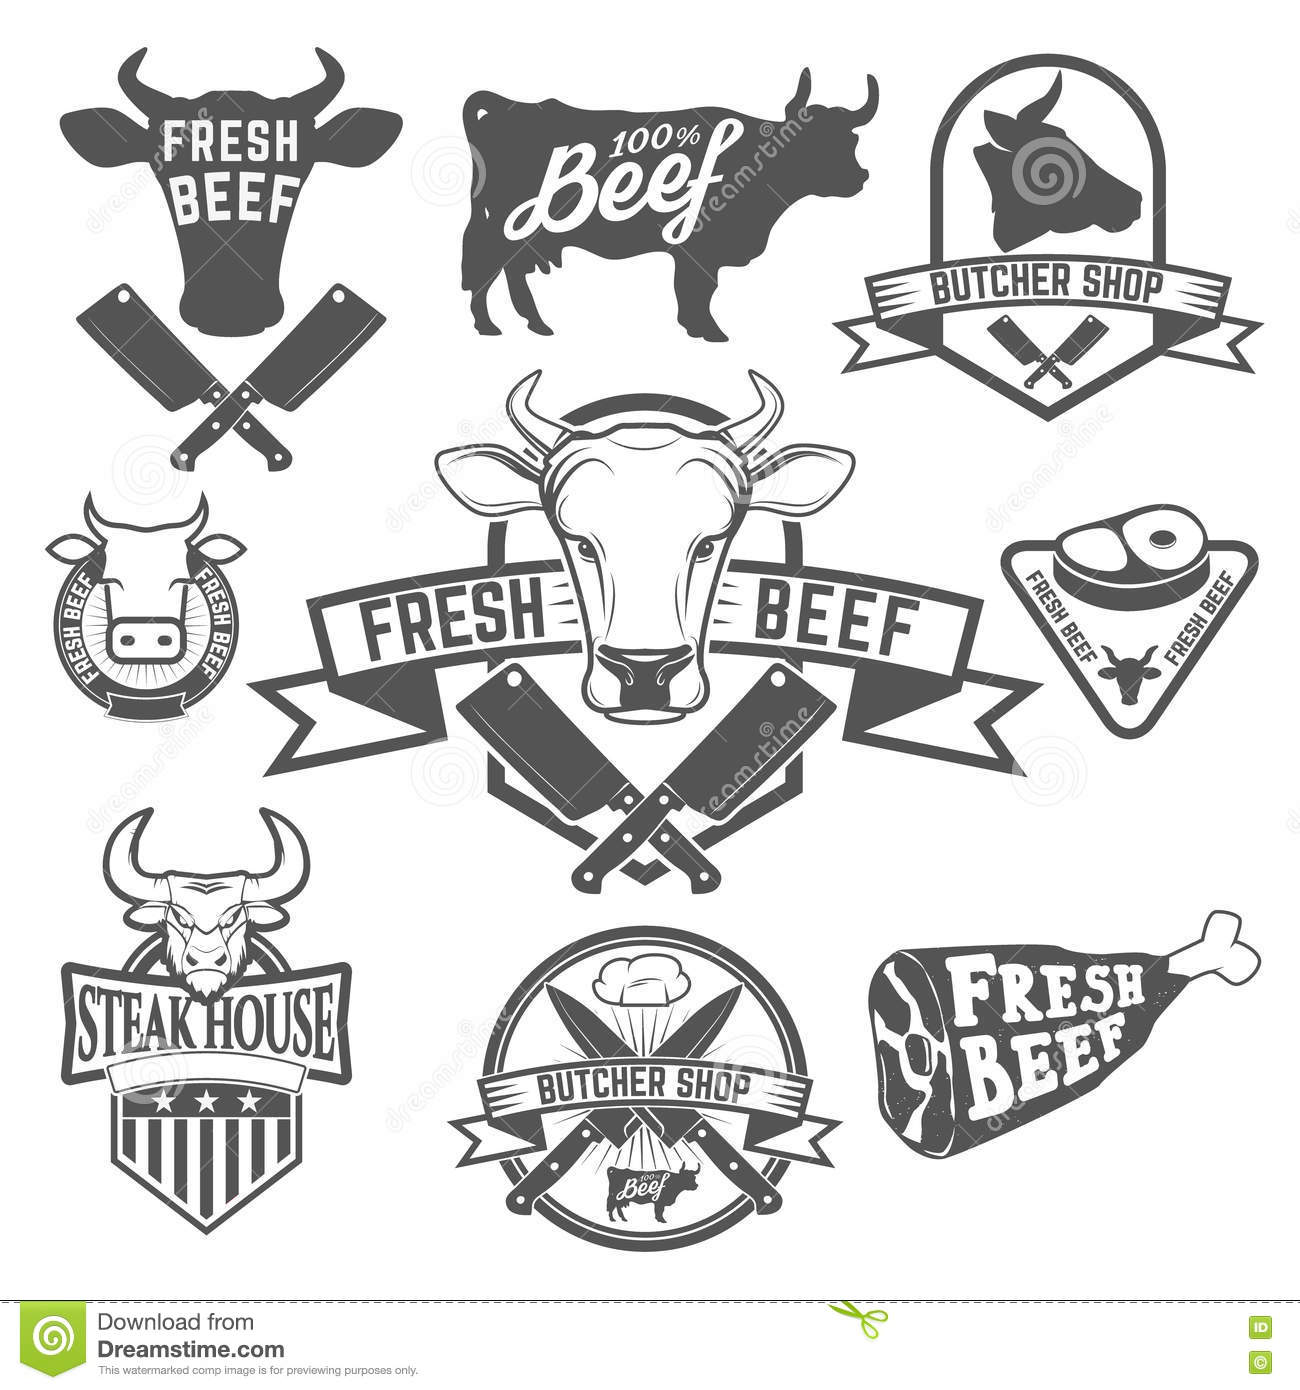 Skeletal chart likewise Chicken Meat Parts fRLoZjRV5dqzvZWVGoQh6KLXk4sWPPKPgaRdWsOH8A4 together with 86360 meat Of Cow besides Beef Cuts Overview as well Dads Barbecue Best In Town. on cuts of meat from cow